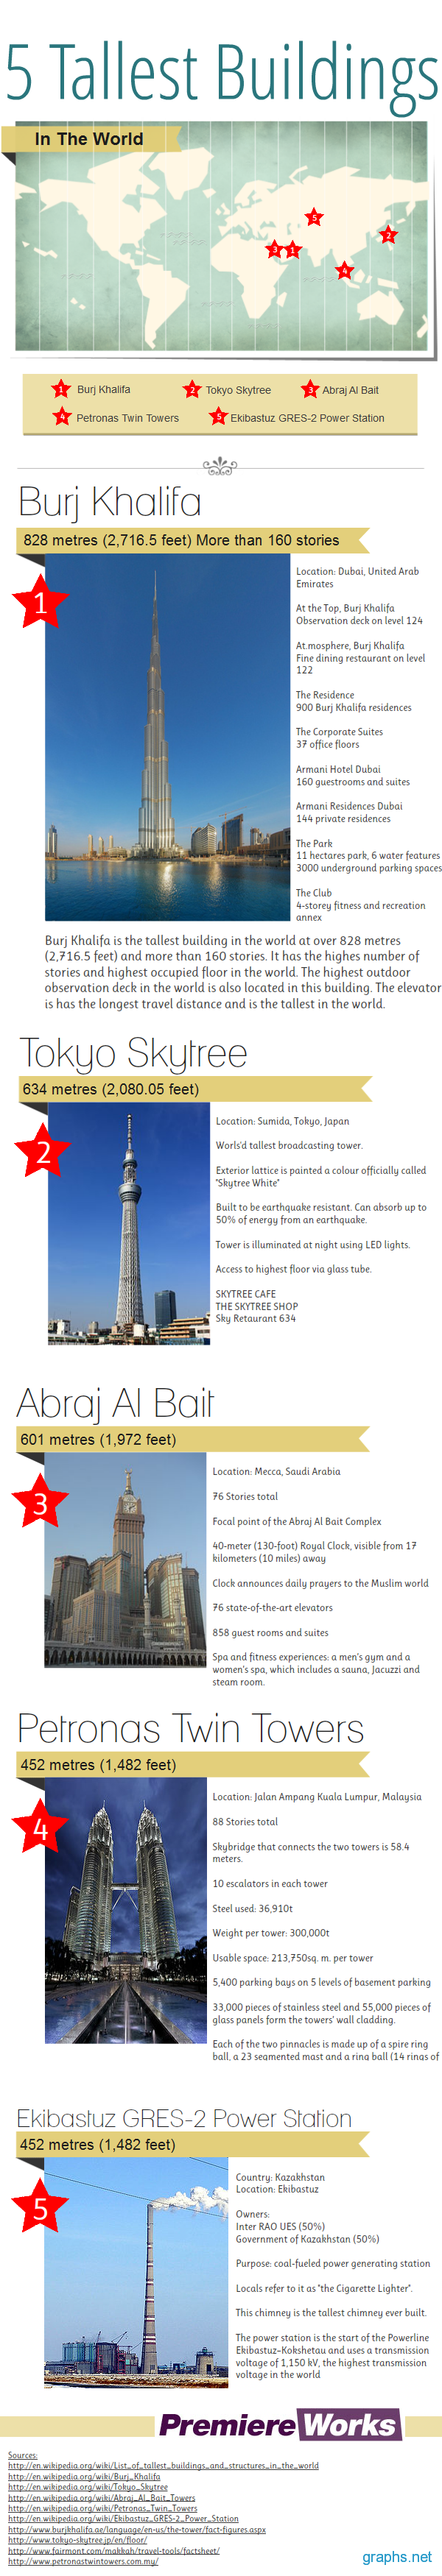 World's Top 5 Tallest Buildings